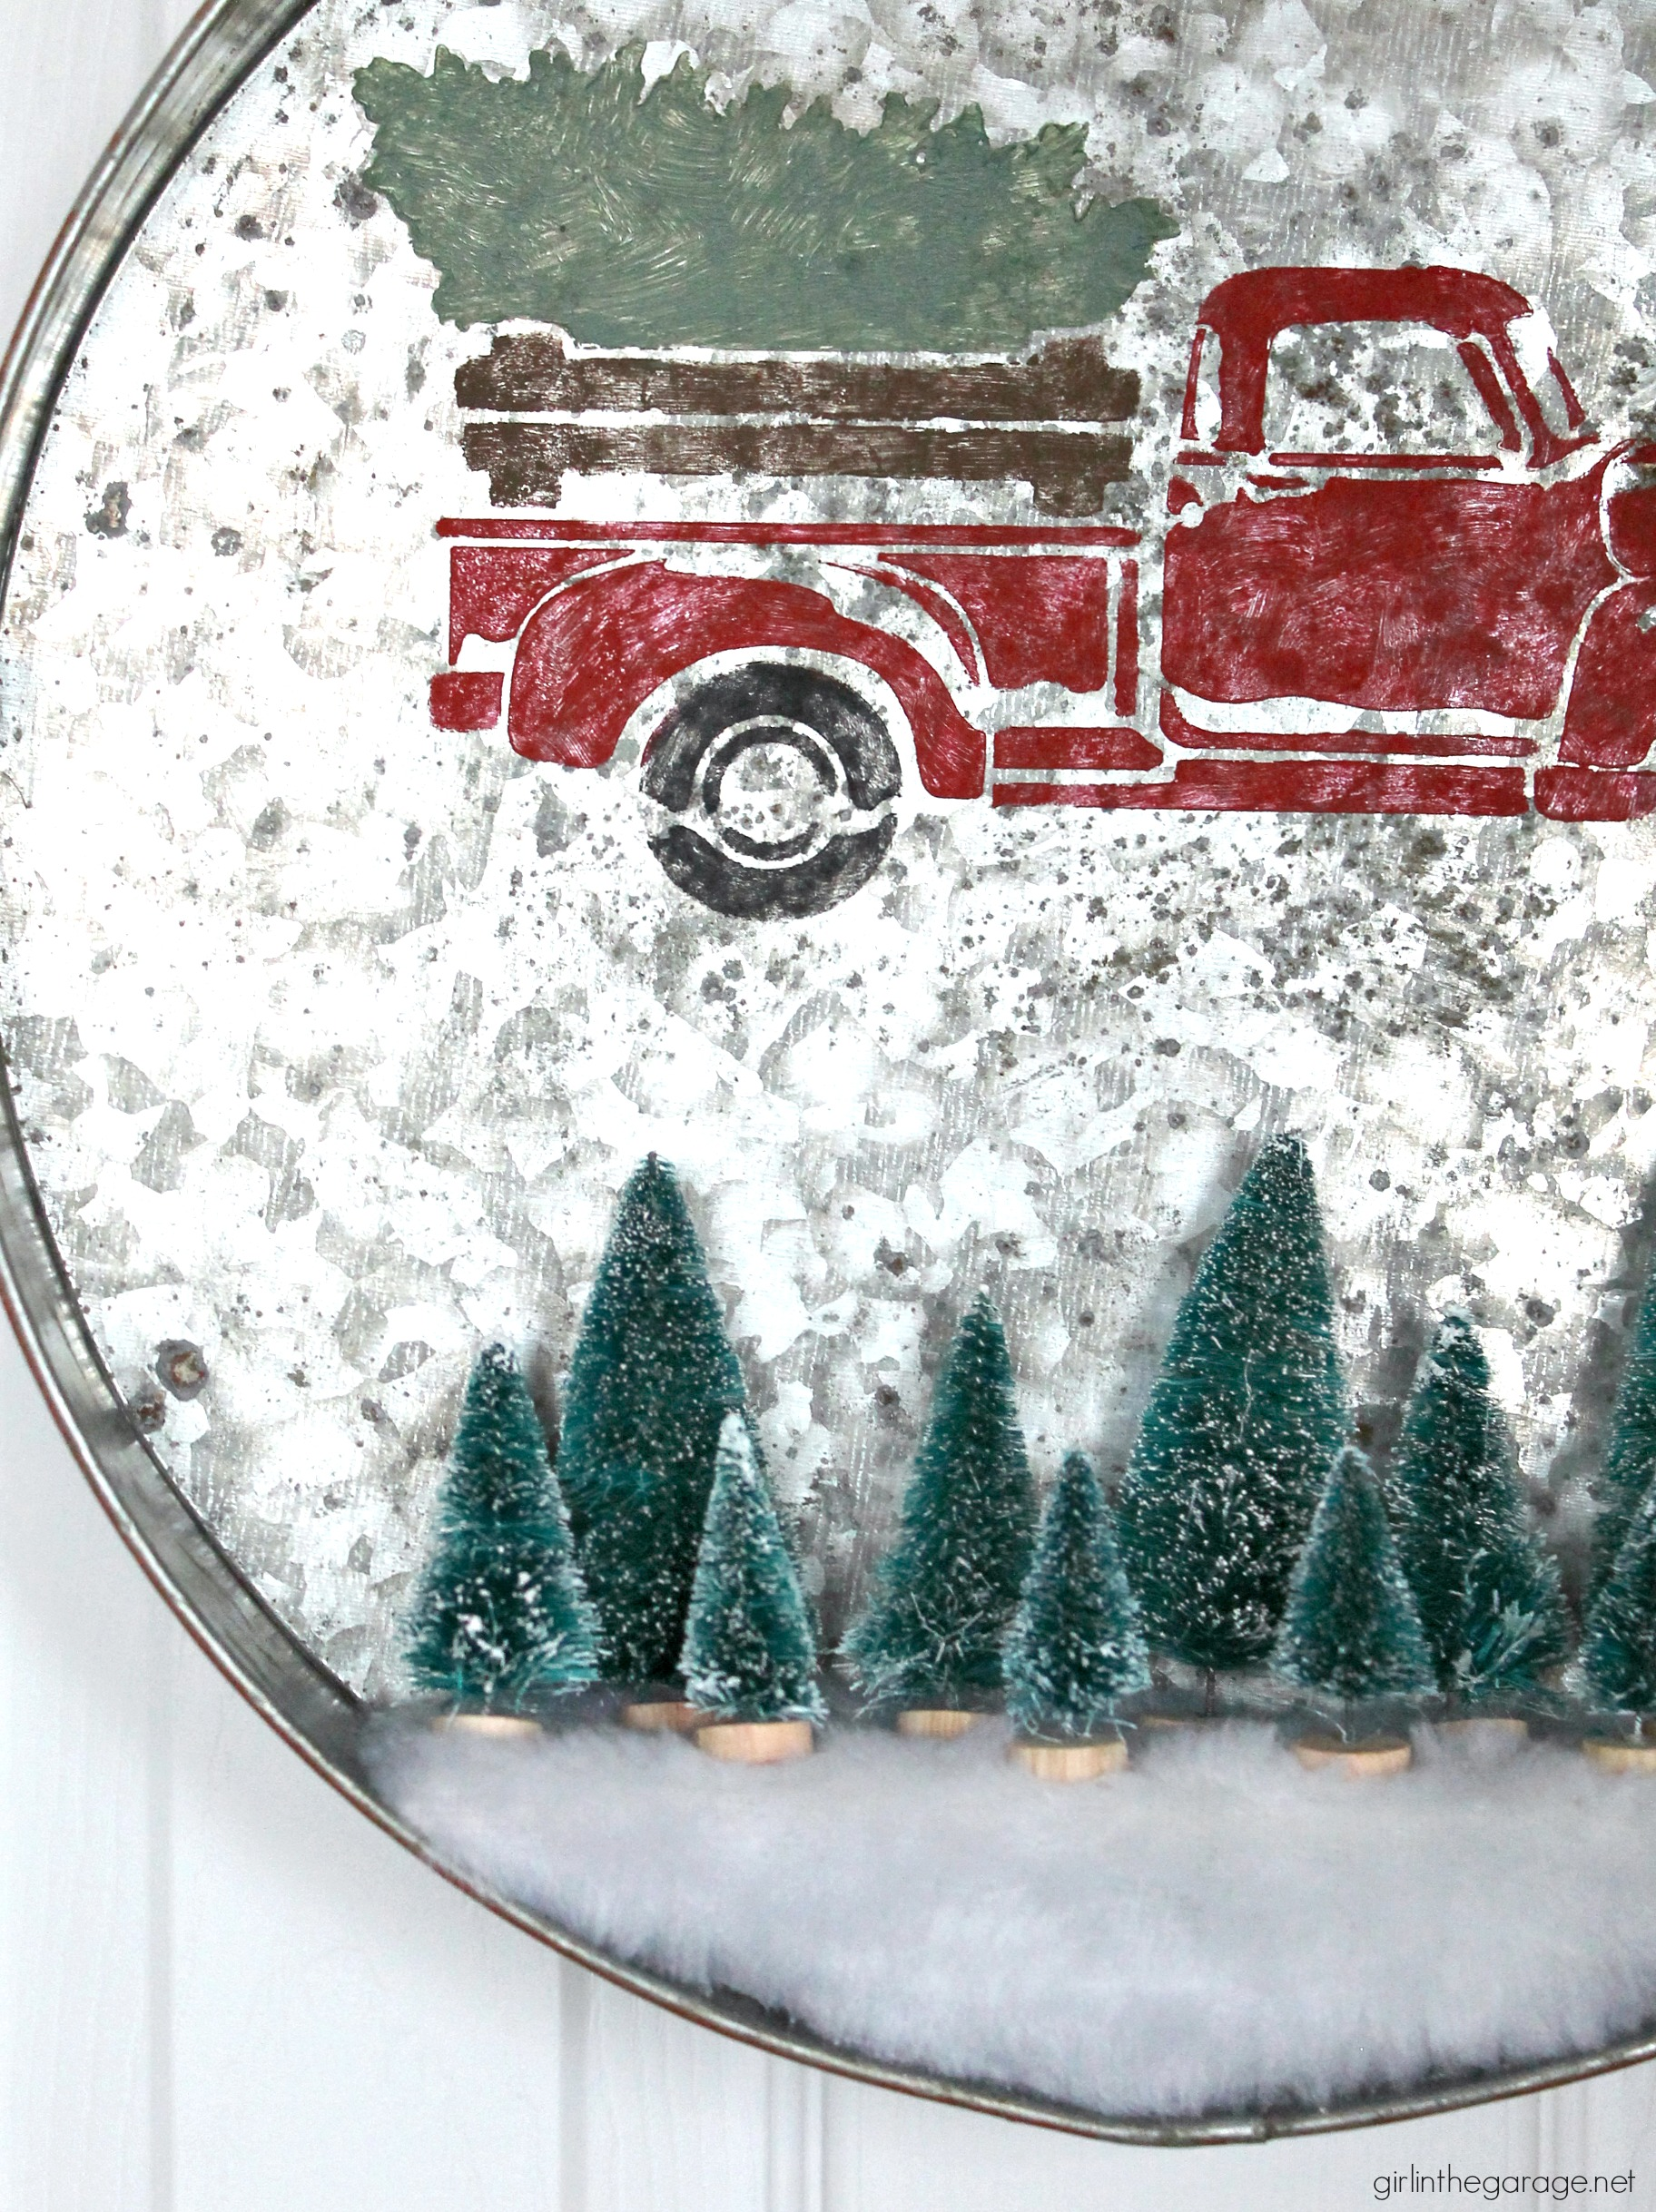 Make a DIY Christmas wreath from a repurposed metal tray - an adorable Christmas decor idea with stenciled truck and miniature bottle brush trees! By Girl in the Garage